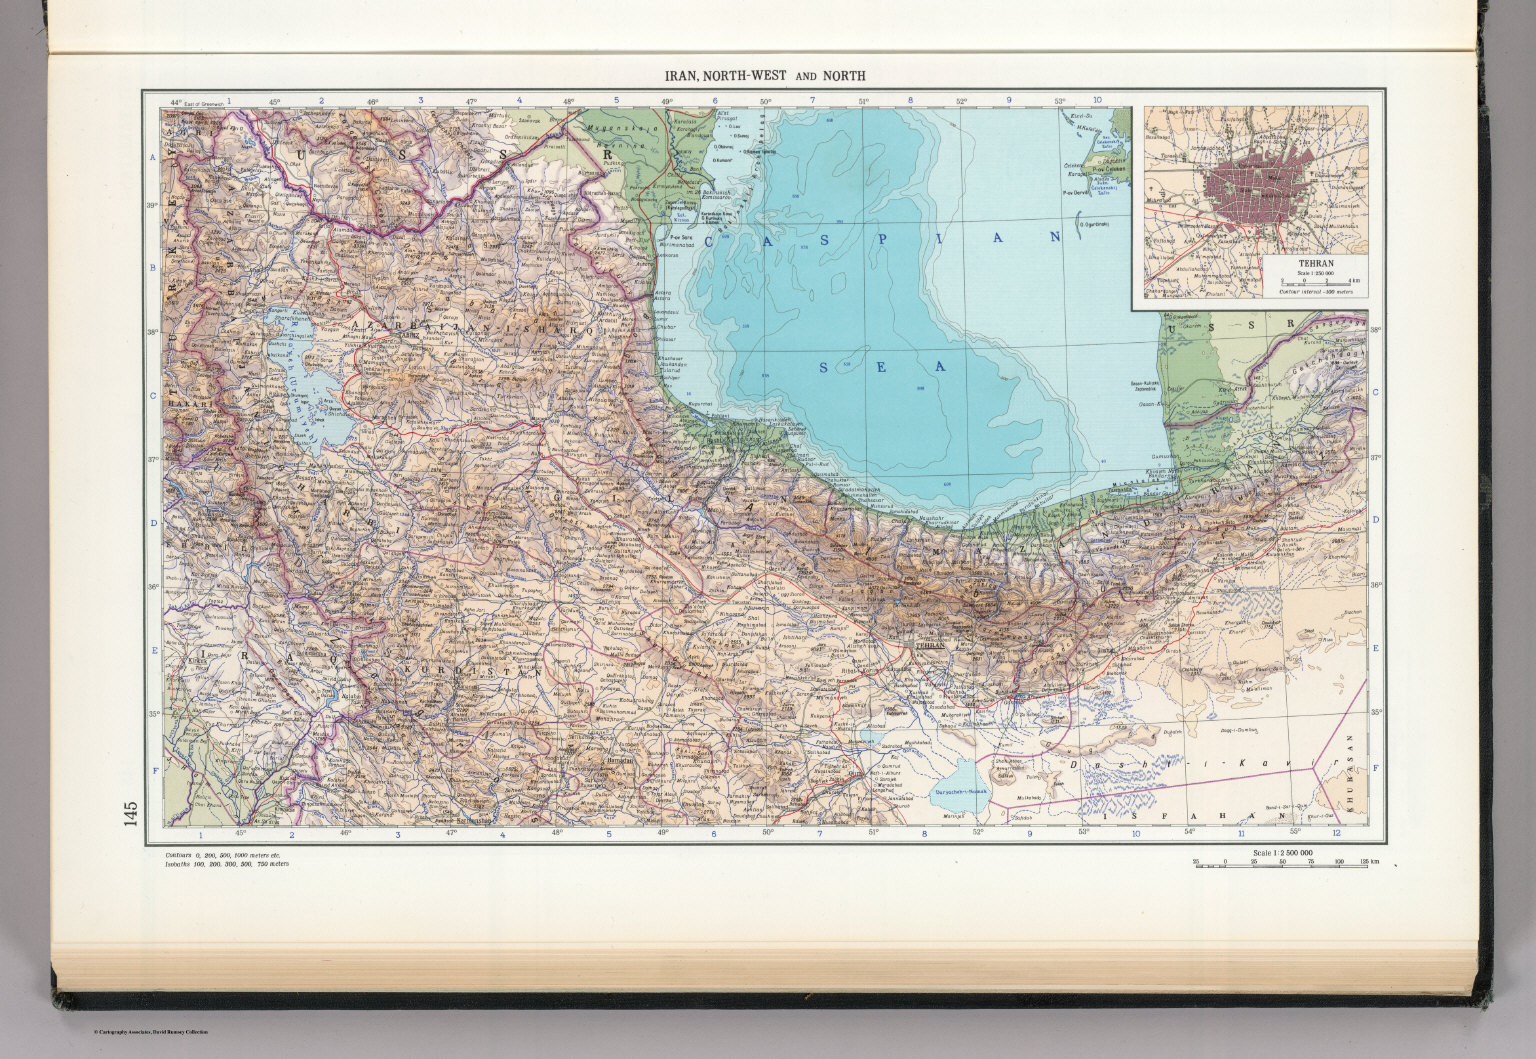 145 iran north west and north tehran the world atlas david iran north west and north tehran the world atlas gumiabroncs Choice Image